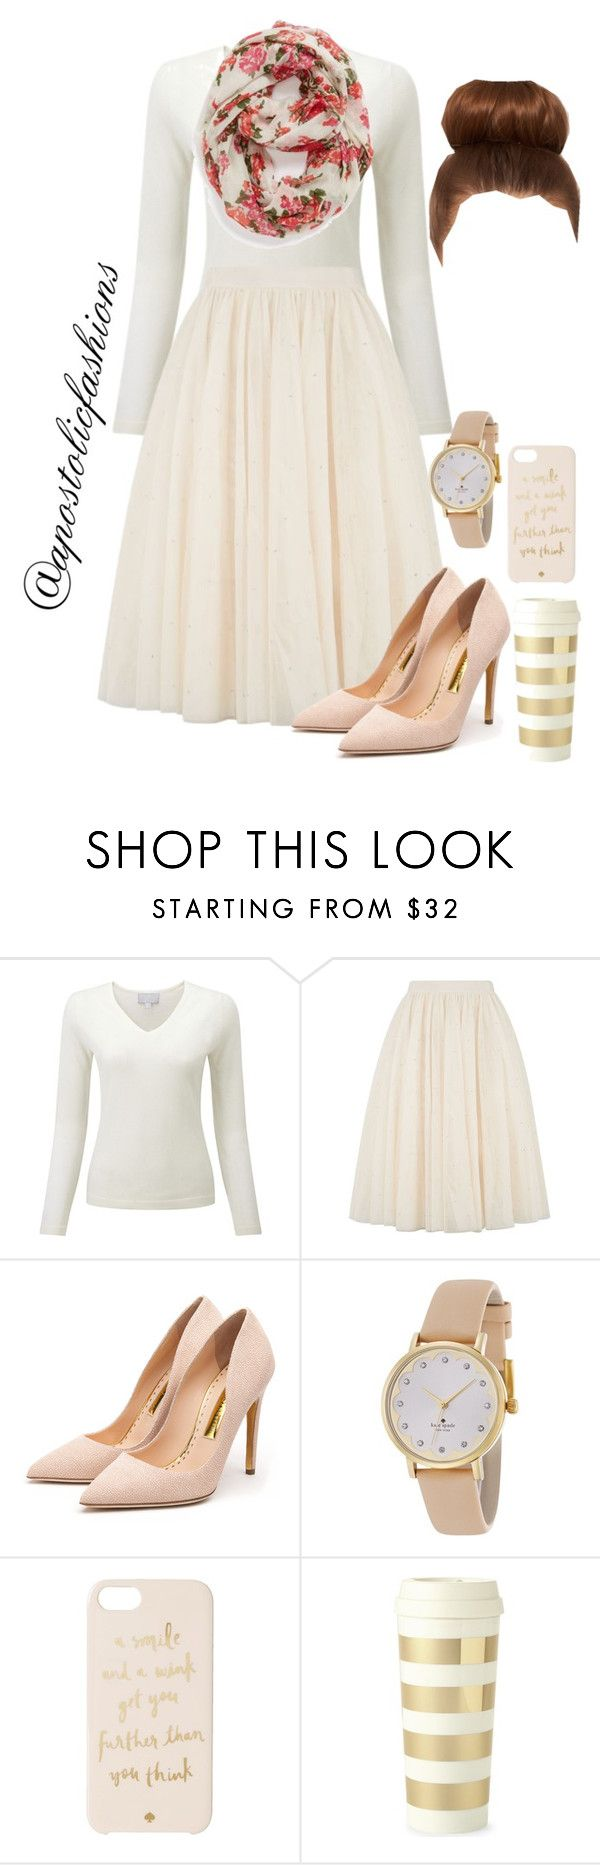 """""""Apostolic Fashions #1107"""" by apostolicfashions on Polyvore featuring Ted Baker, Rupert Sanderson, Kate Spade, Capelli New York, women's clothing, women, female, woman, misses and juniors"""